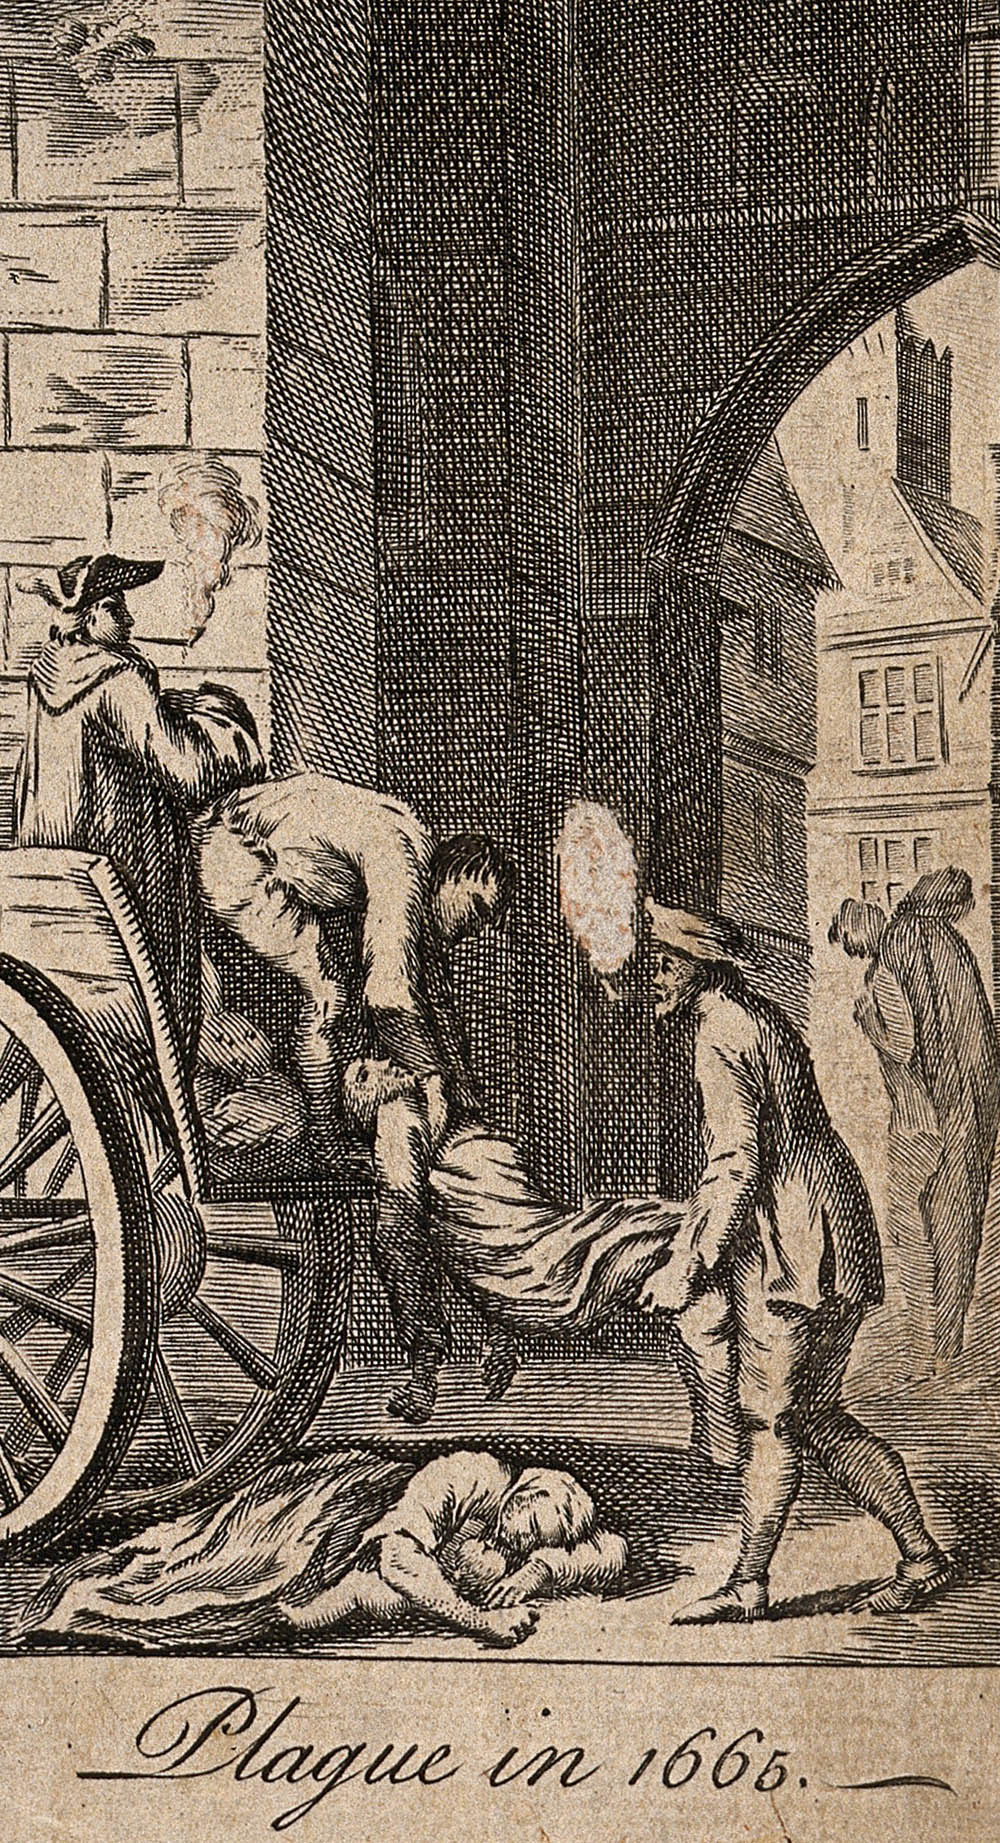 18th century depiction of how the plague was handled in the 1600s